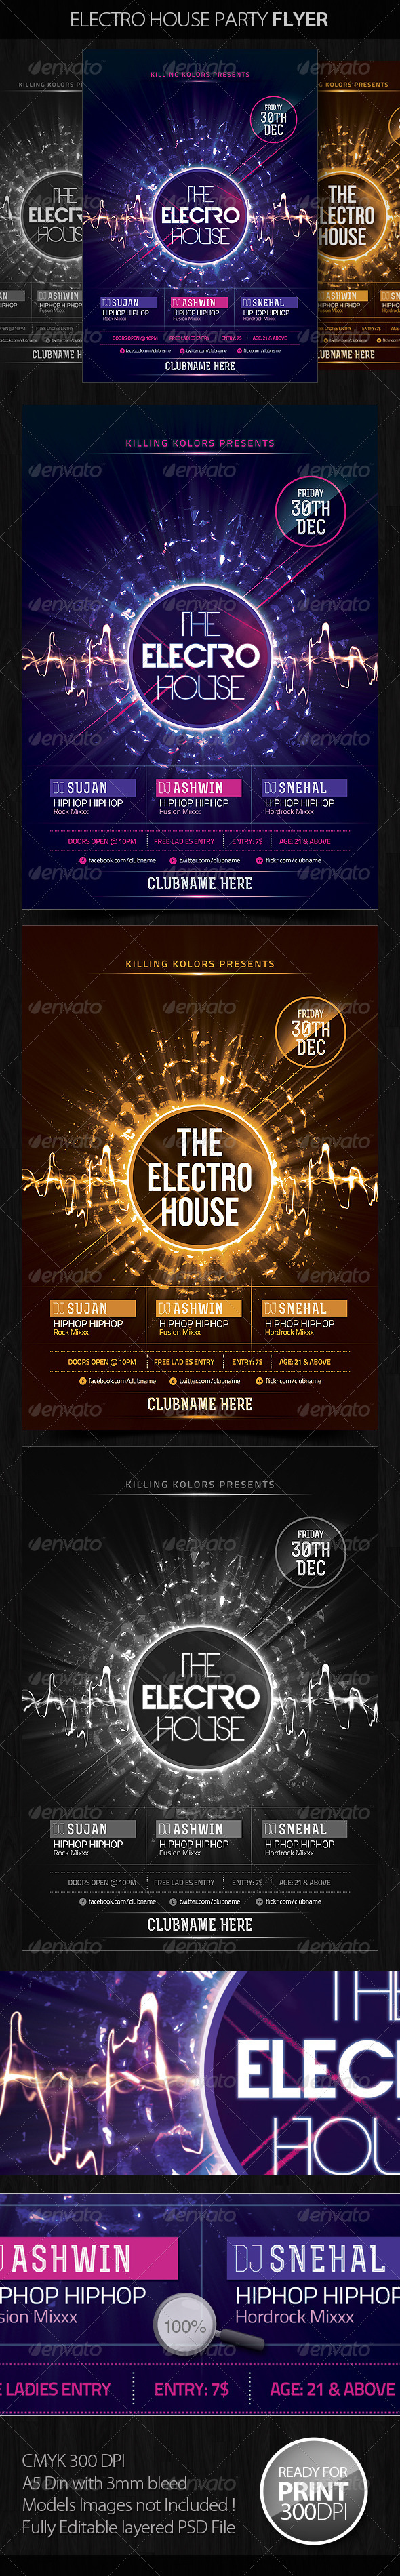 GraphicRiver Electro House Party Flyer 4017853